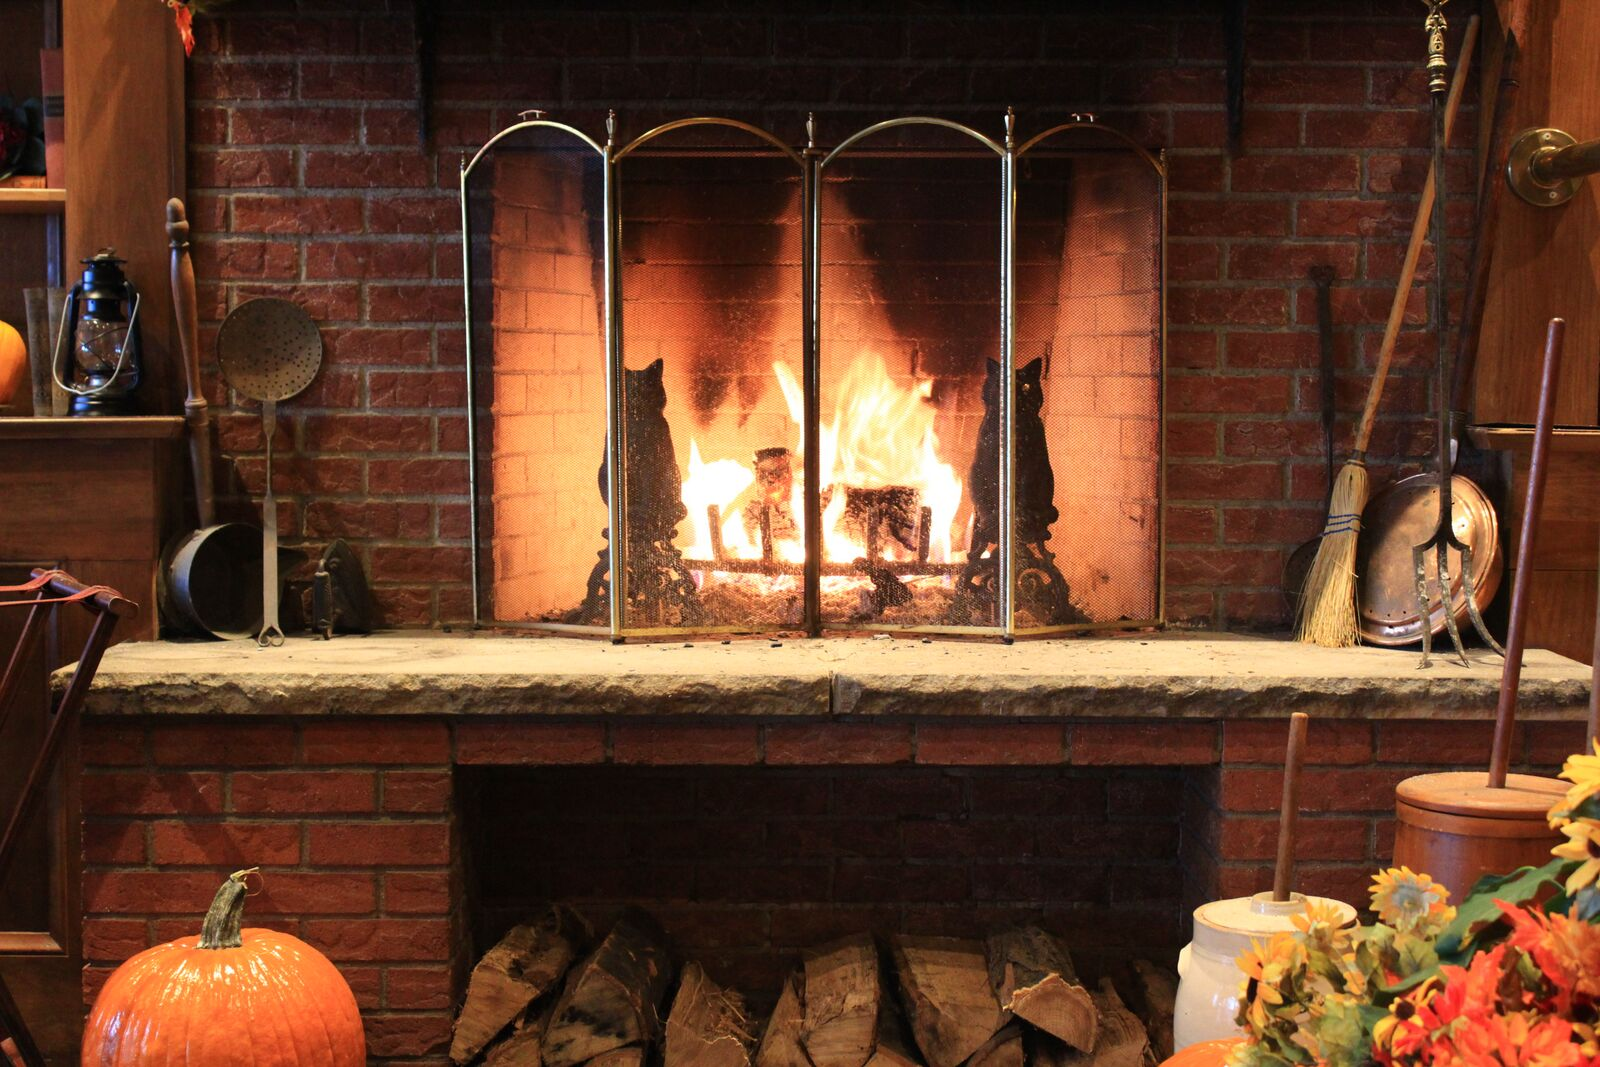 WCT_Fireplace_Pumpkin.jpg